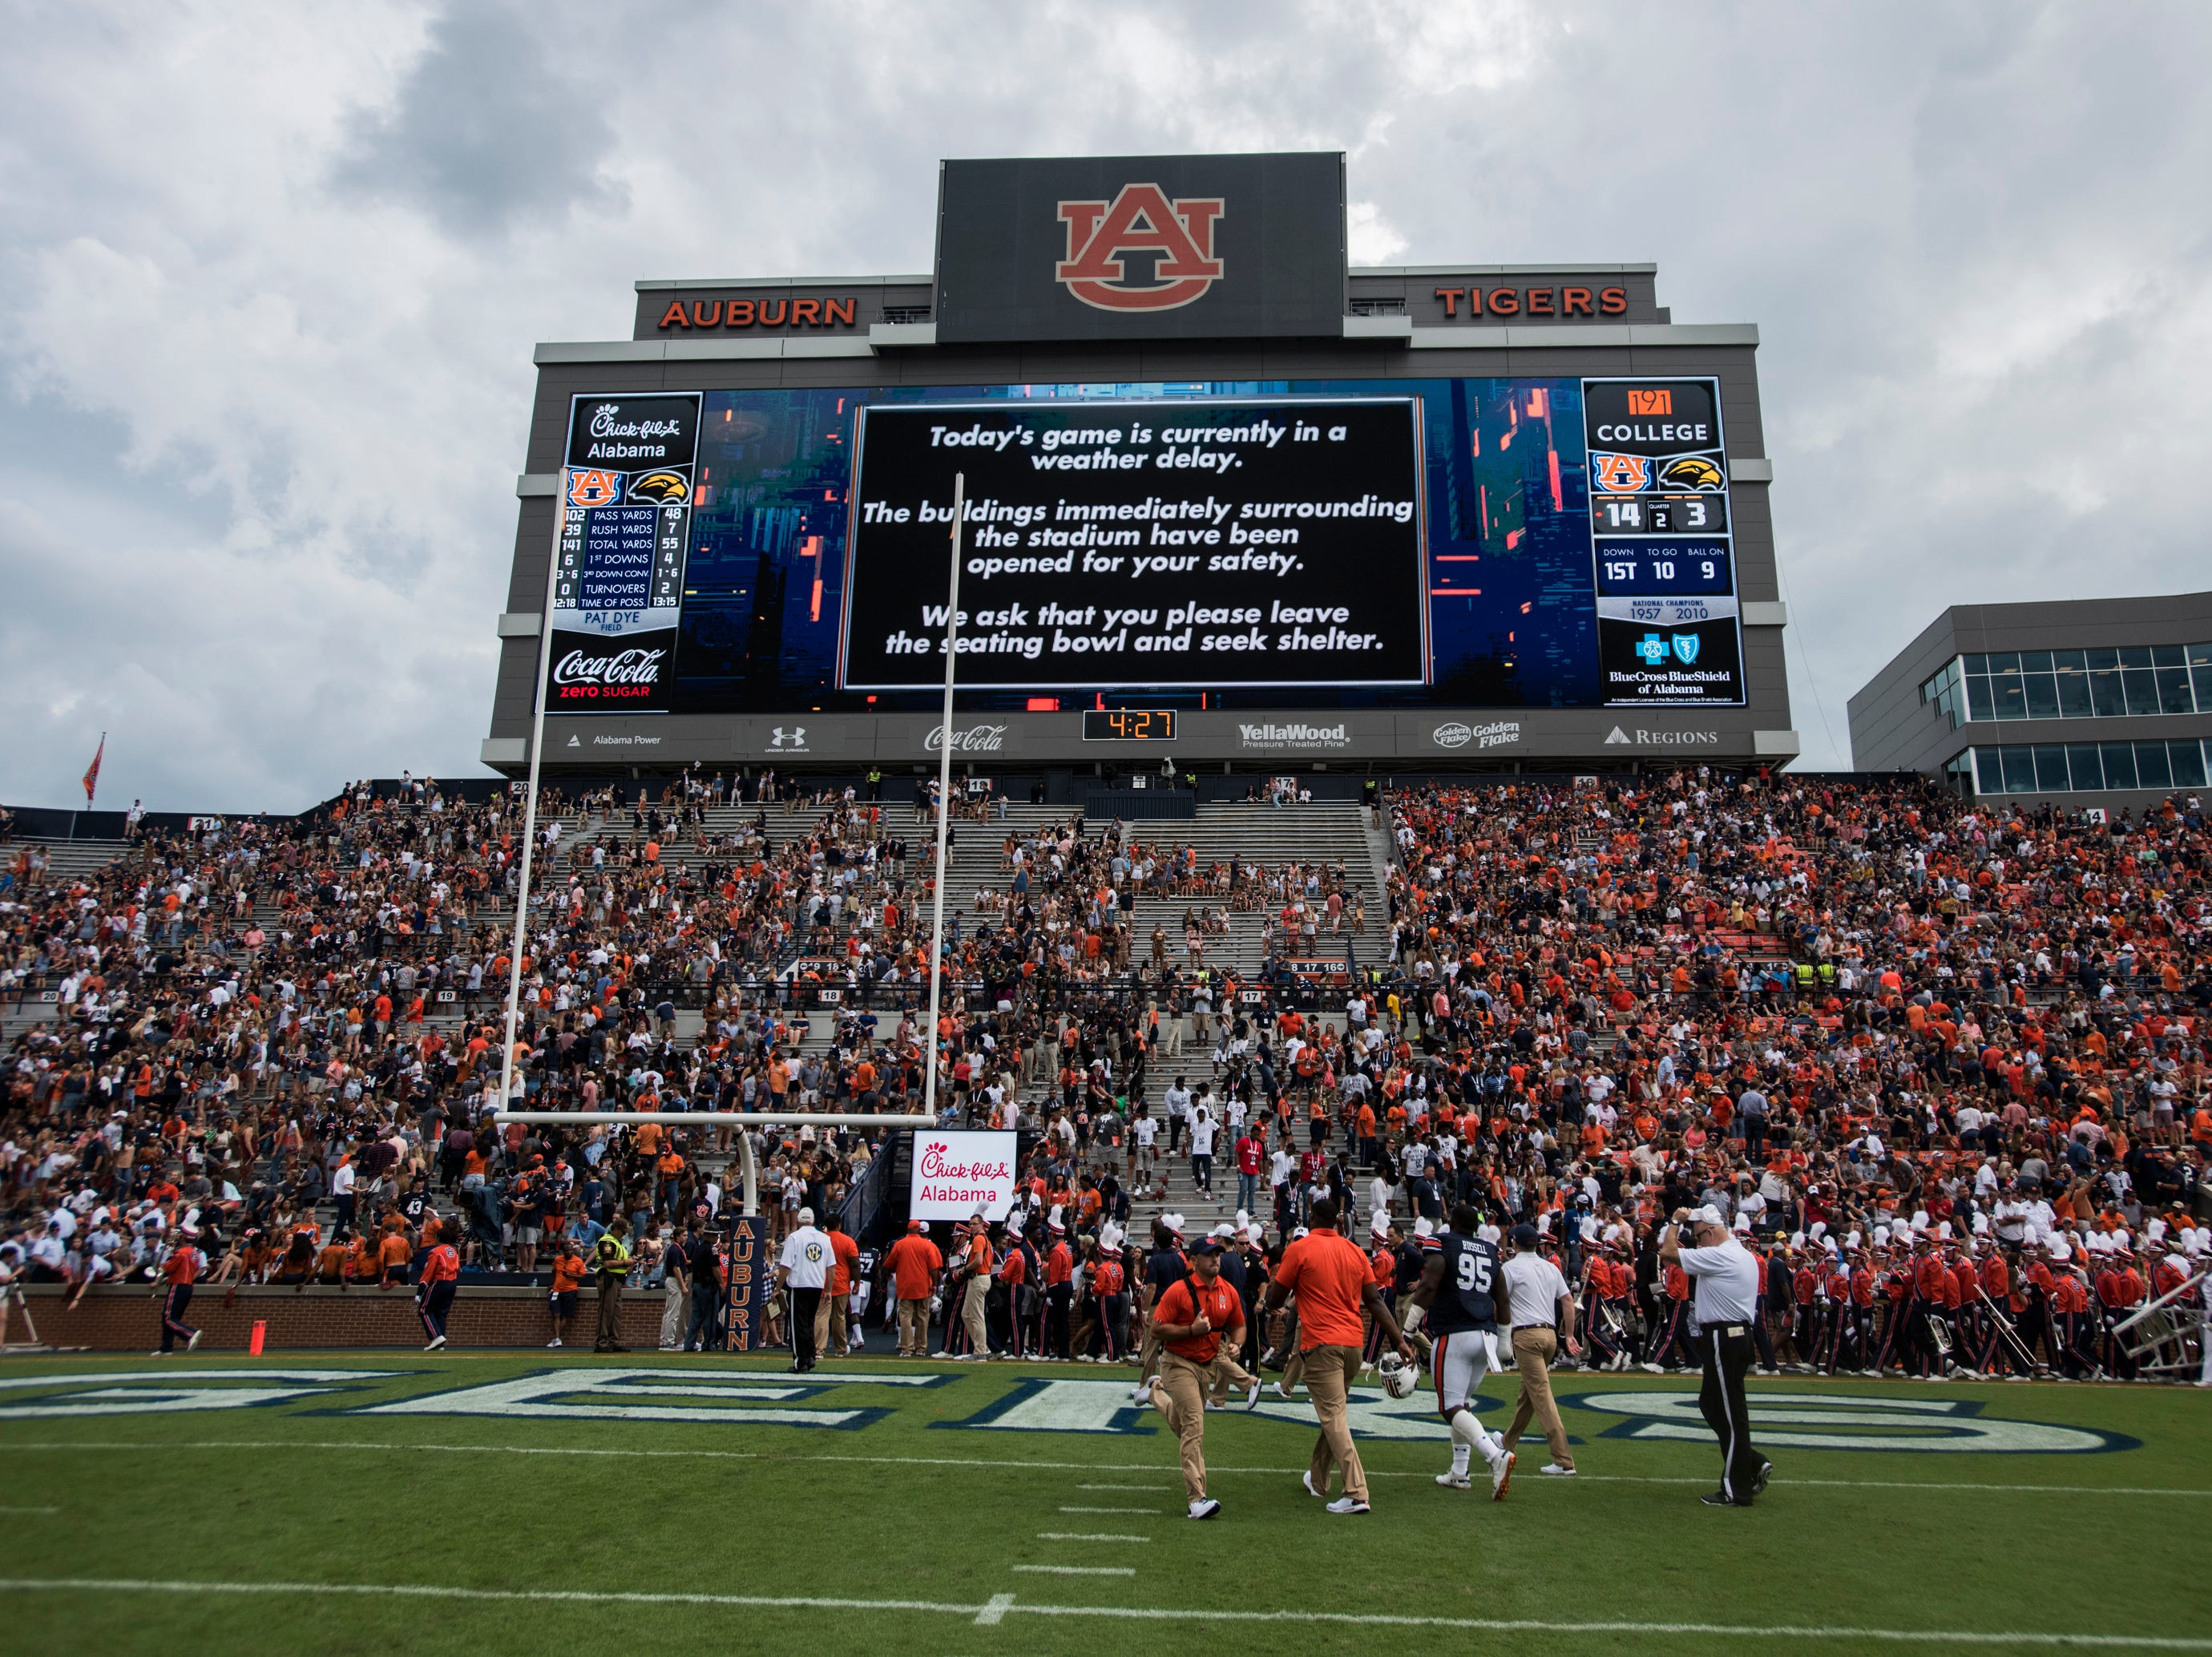 Auburn players head to the locker room after a weather delay is announced with 4:27 left in the second quarter of the Auburn-Southern Miss game at Jordan-Hare Stadium in Auburn, Ala., on Saturday, Sept. 29, 2018.